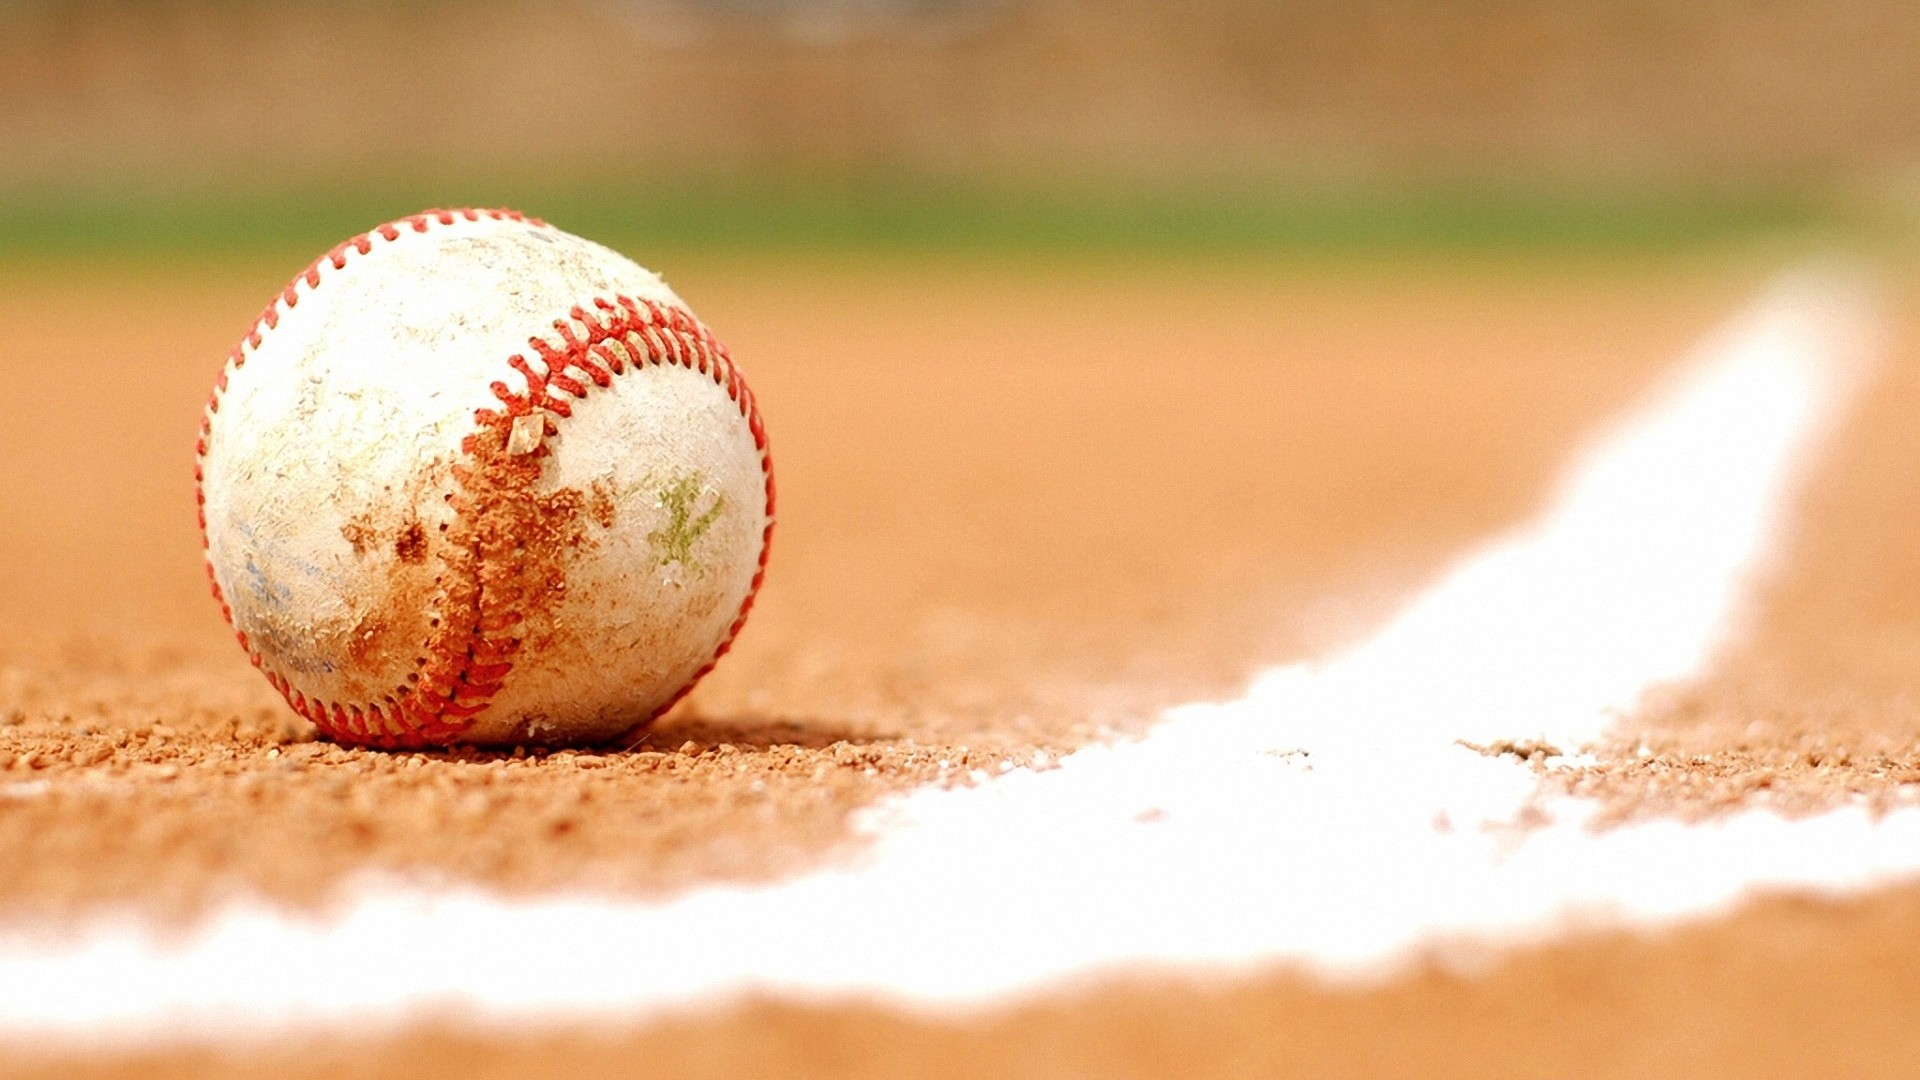 Res: 1920x1080, Baseball Field Wallpapers Phone